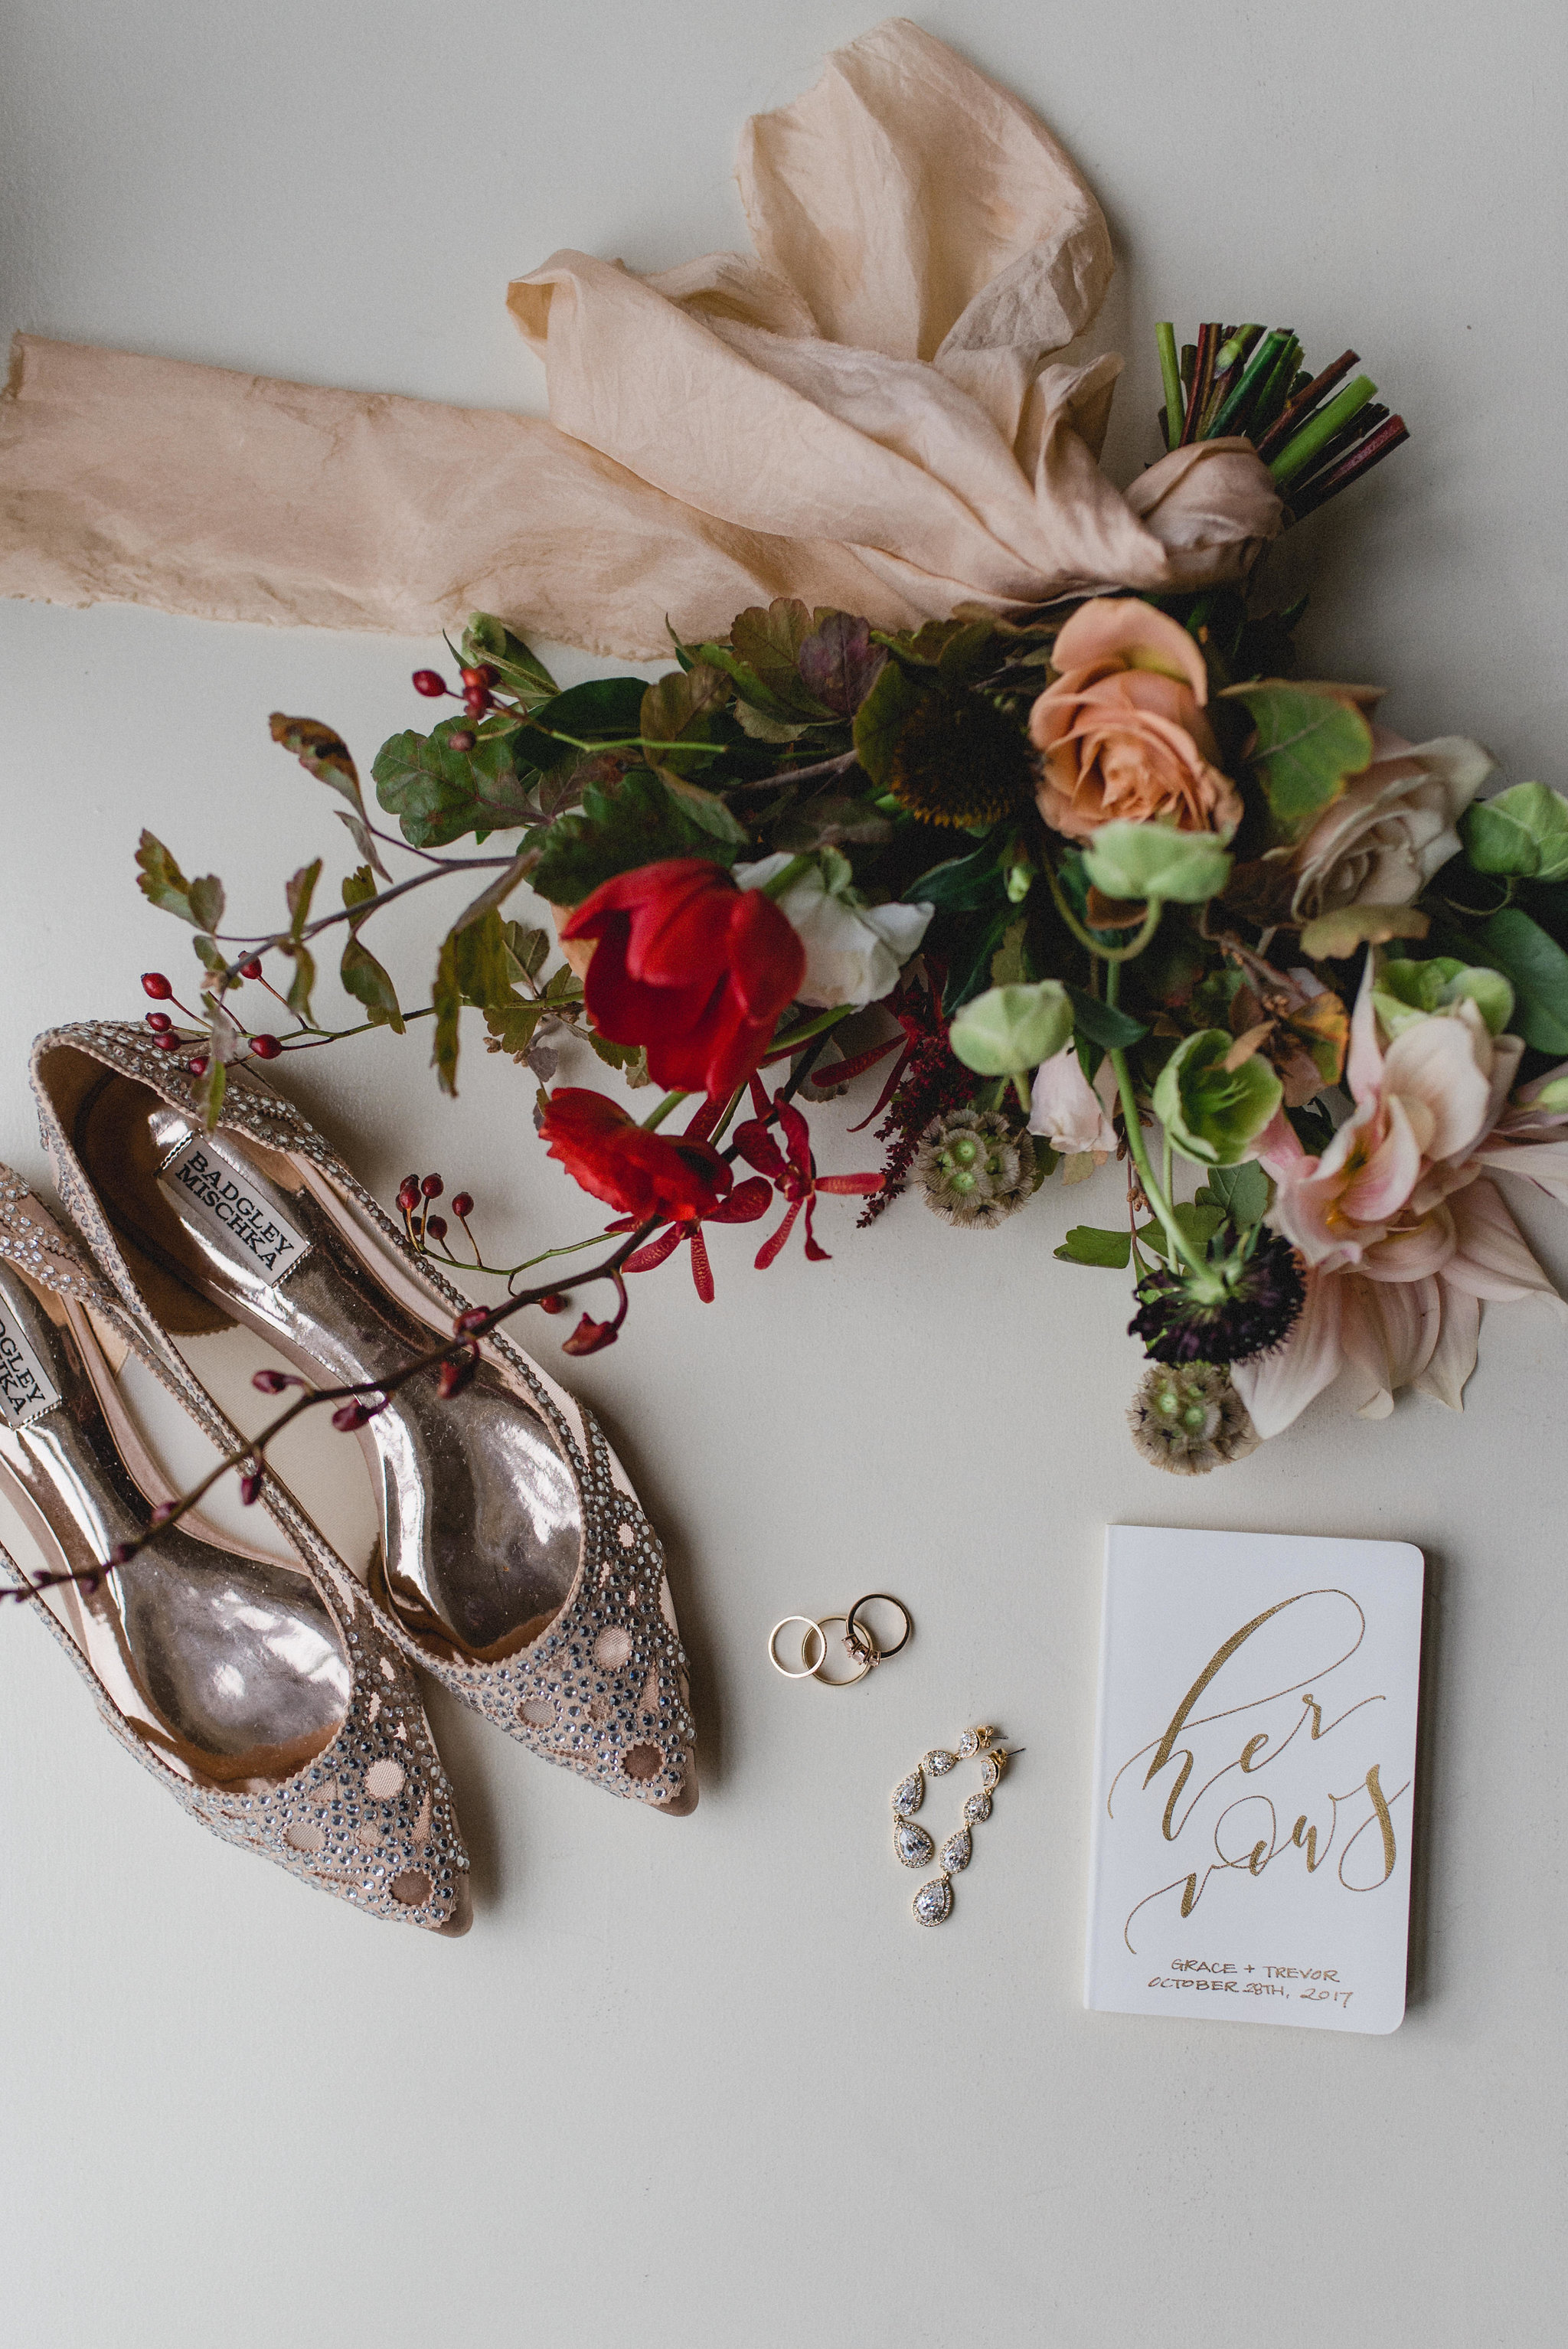 Fall in love - G + T 's romantic fall wedding